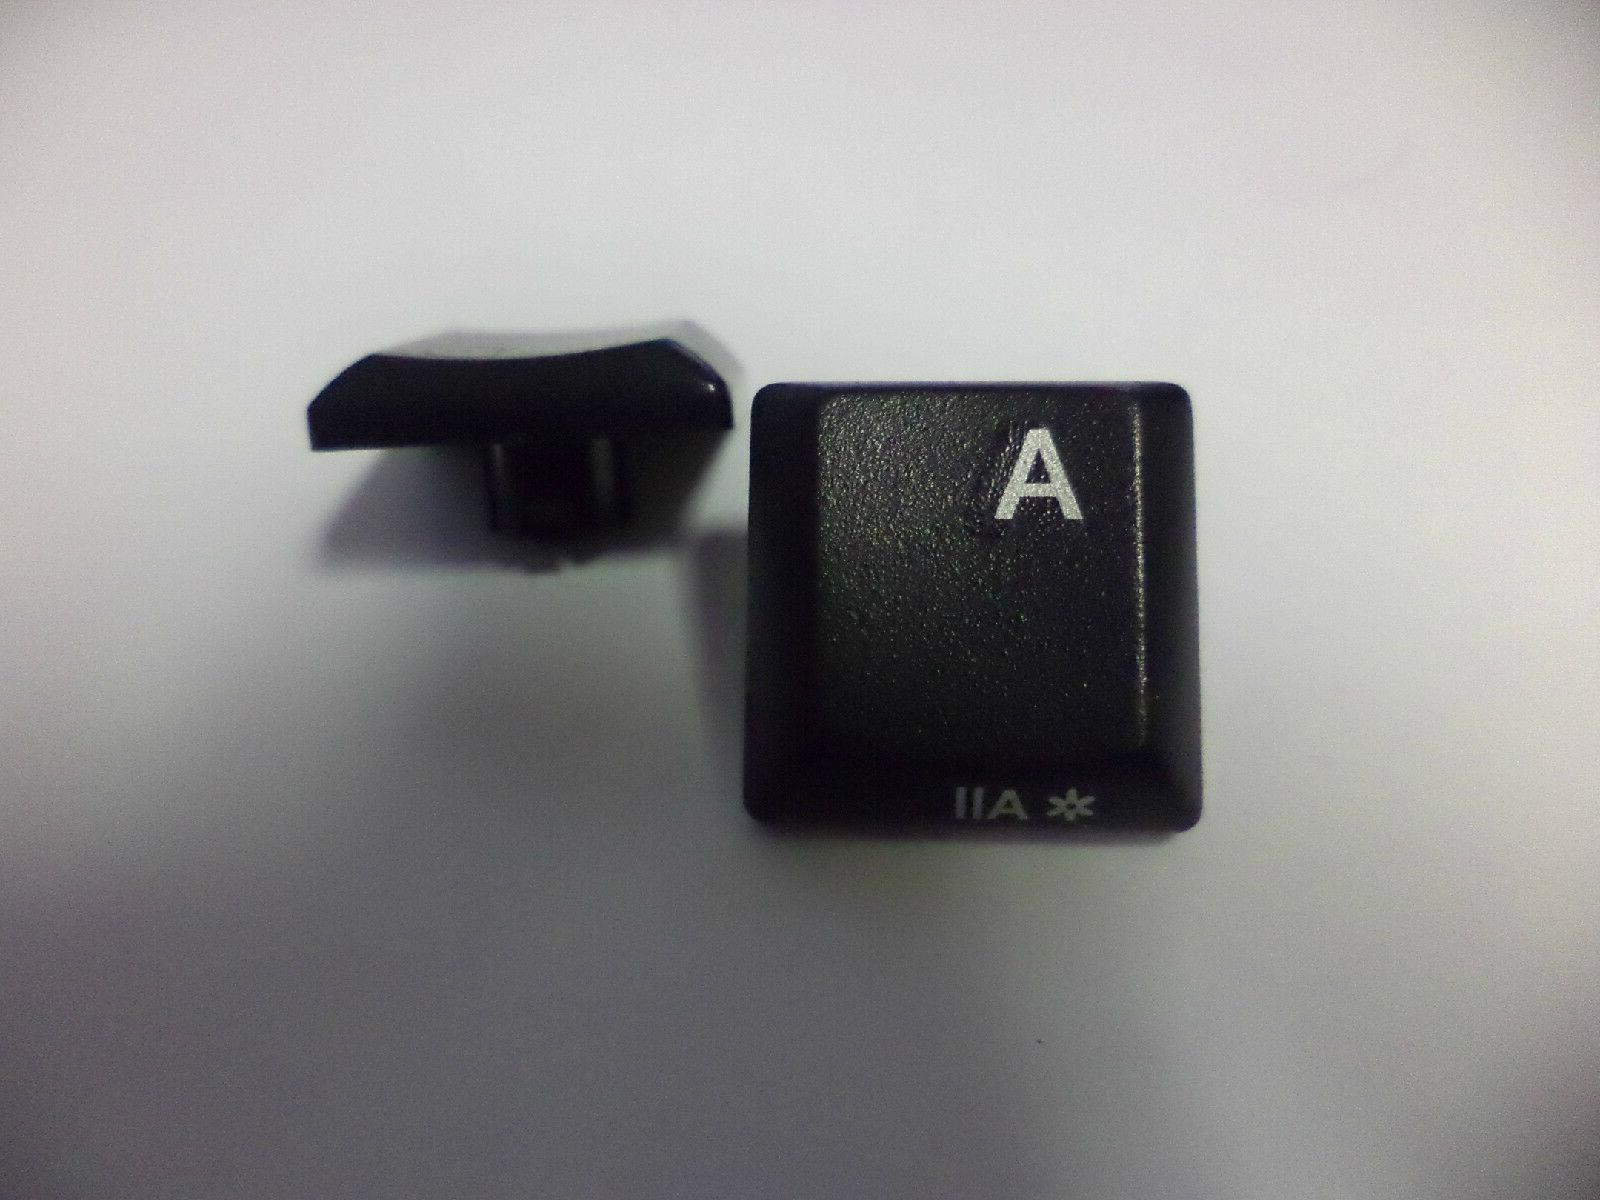 Replacement Key for Microsoft 5000 1394 X820926-001 Wireless